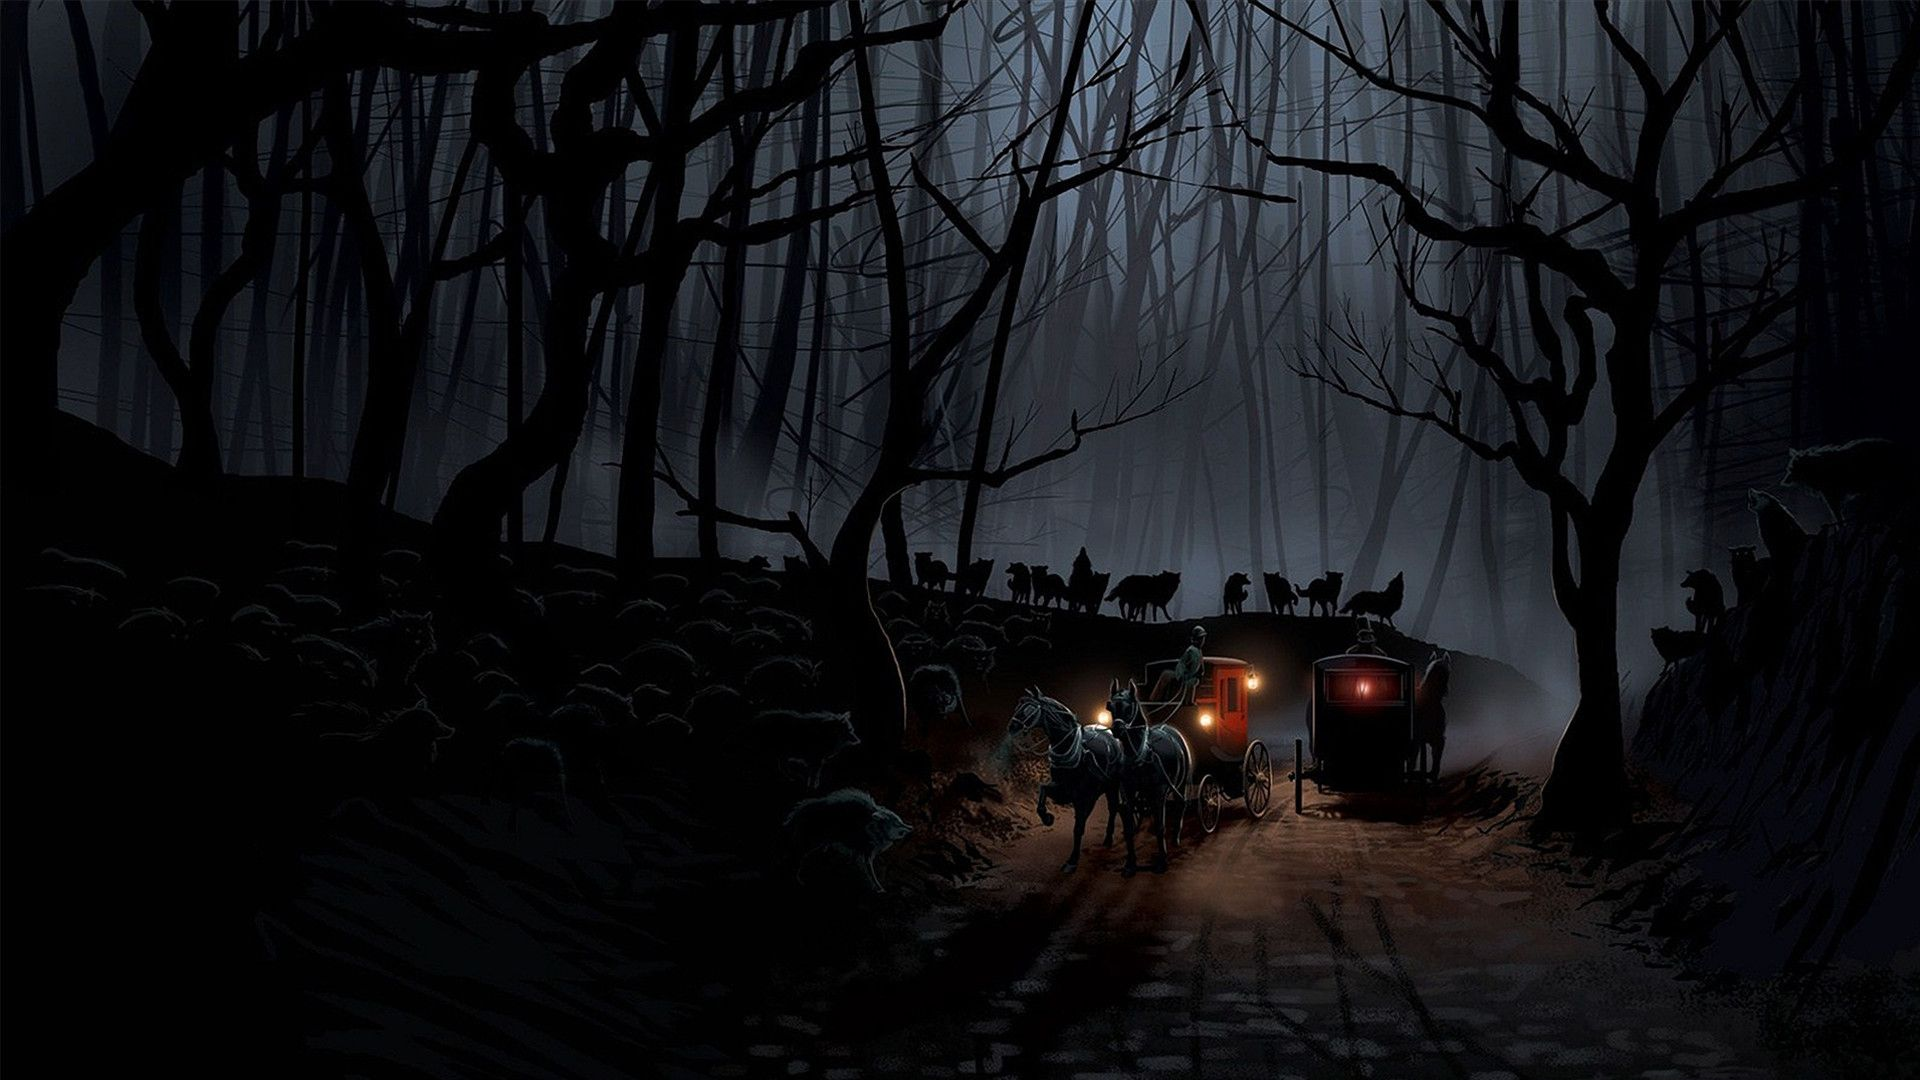 Mystical Night, Scary Forest At Night, Forest At Night, Black Carriage Art wallpaper